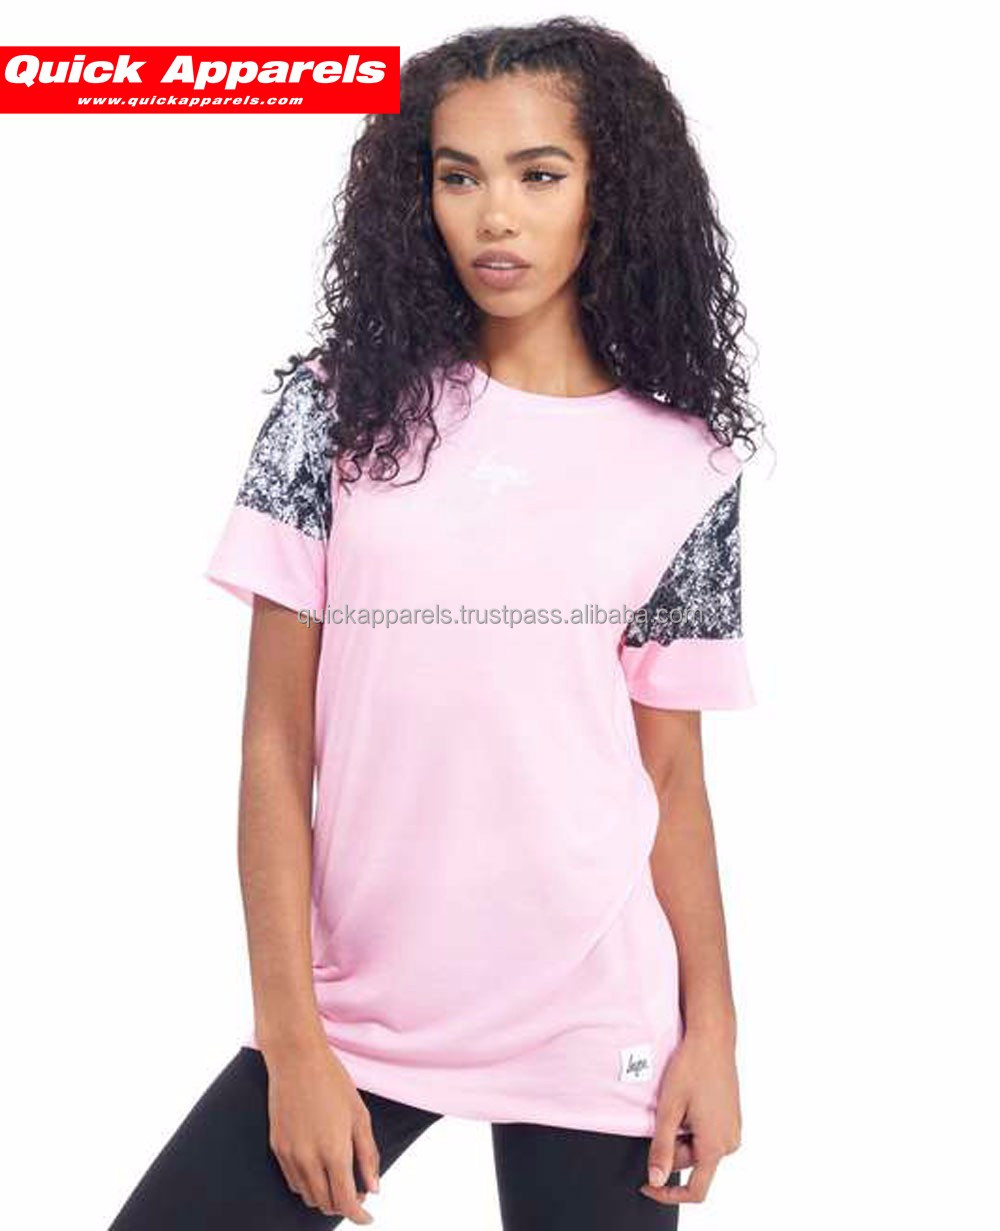 2017 custom wholesale stripe Women's Short Sleeve Crew neck t shirts wholesale